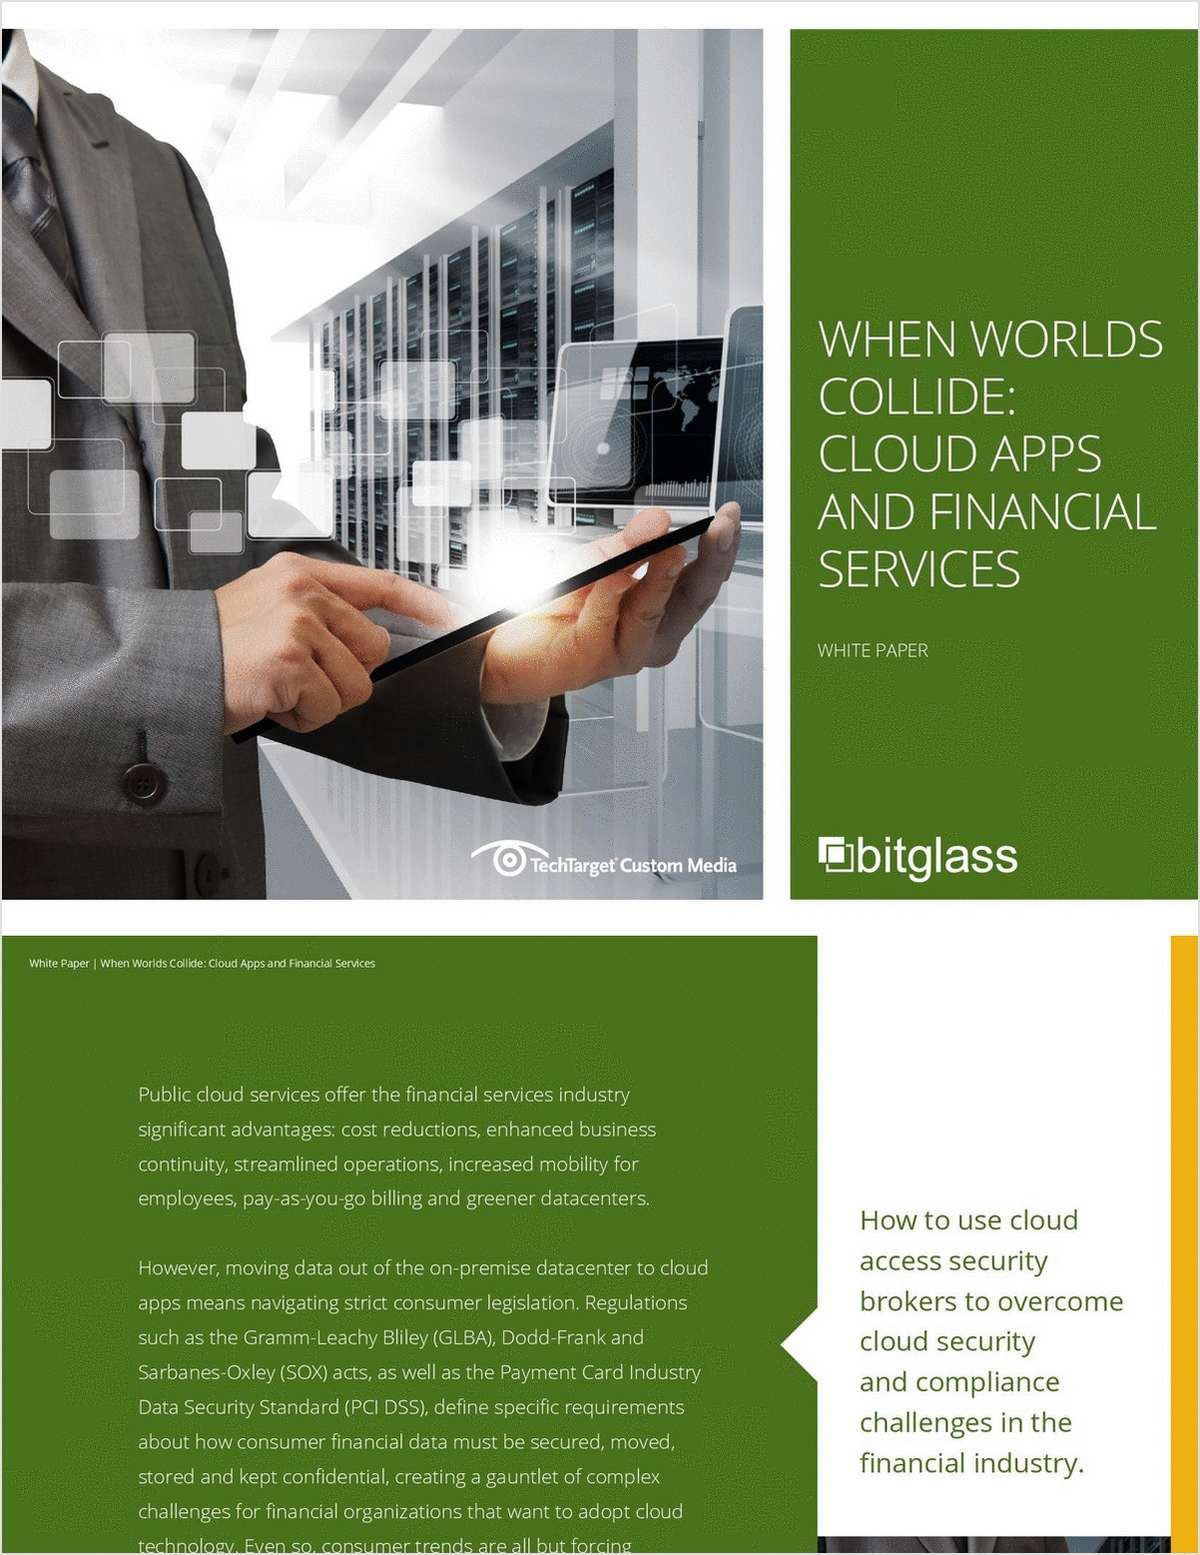 When Worlds Collide: Cloud Apps and Financial Services